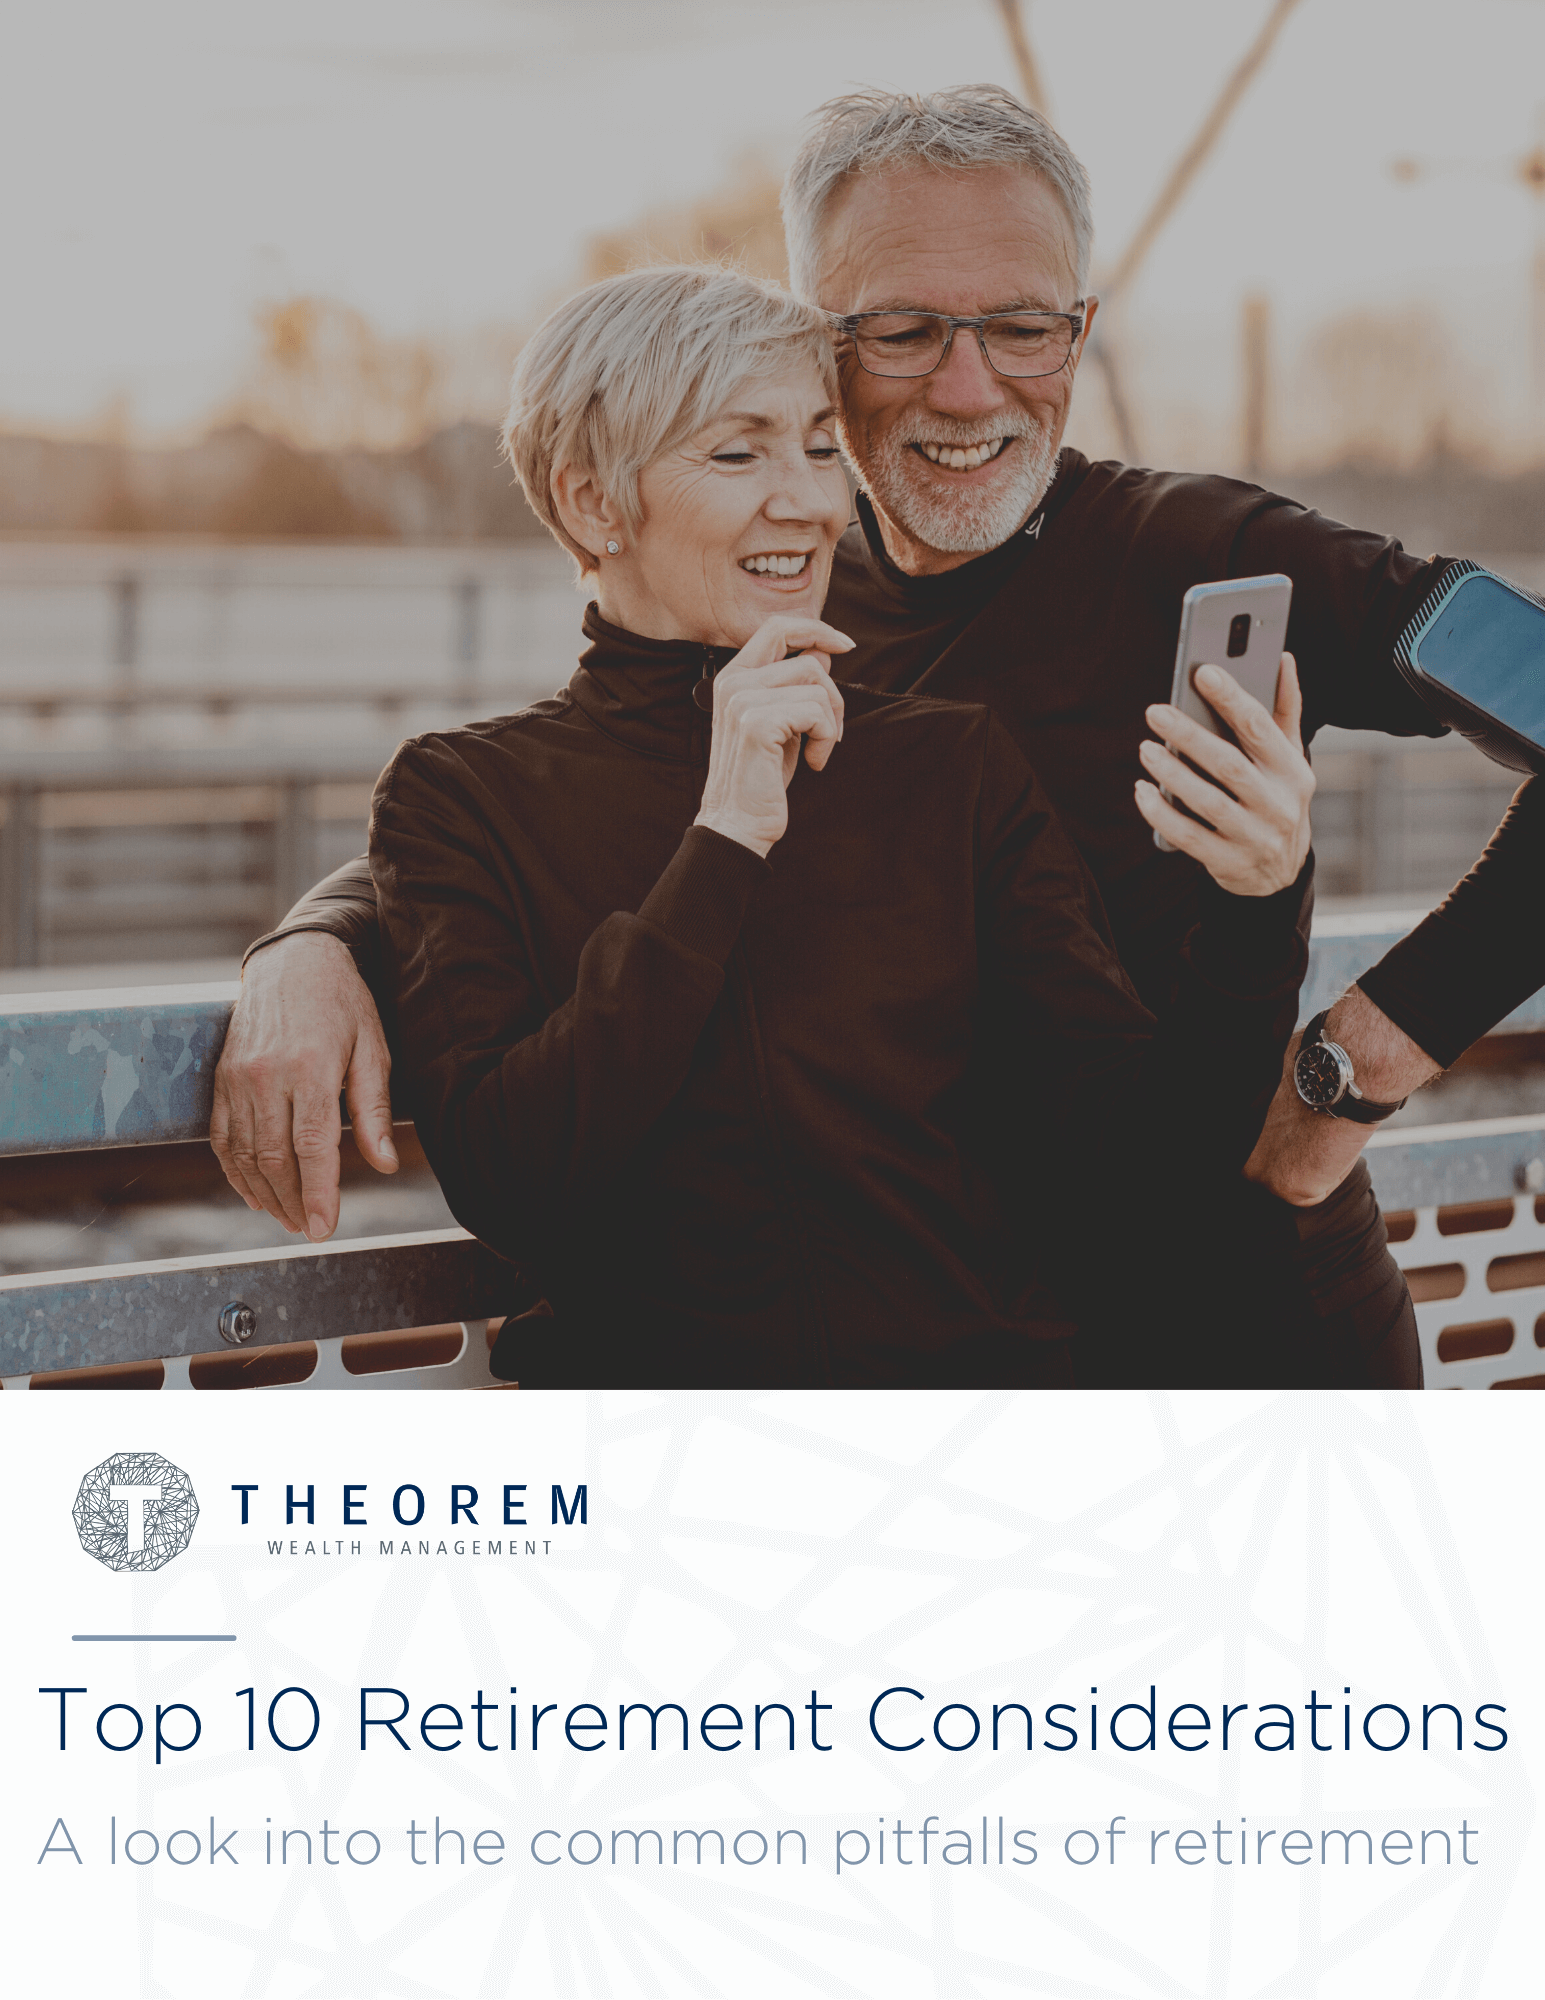 Top 10 Things to Be Aware of When Retiring